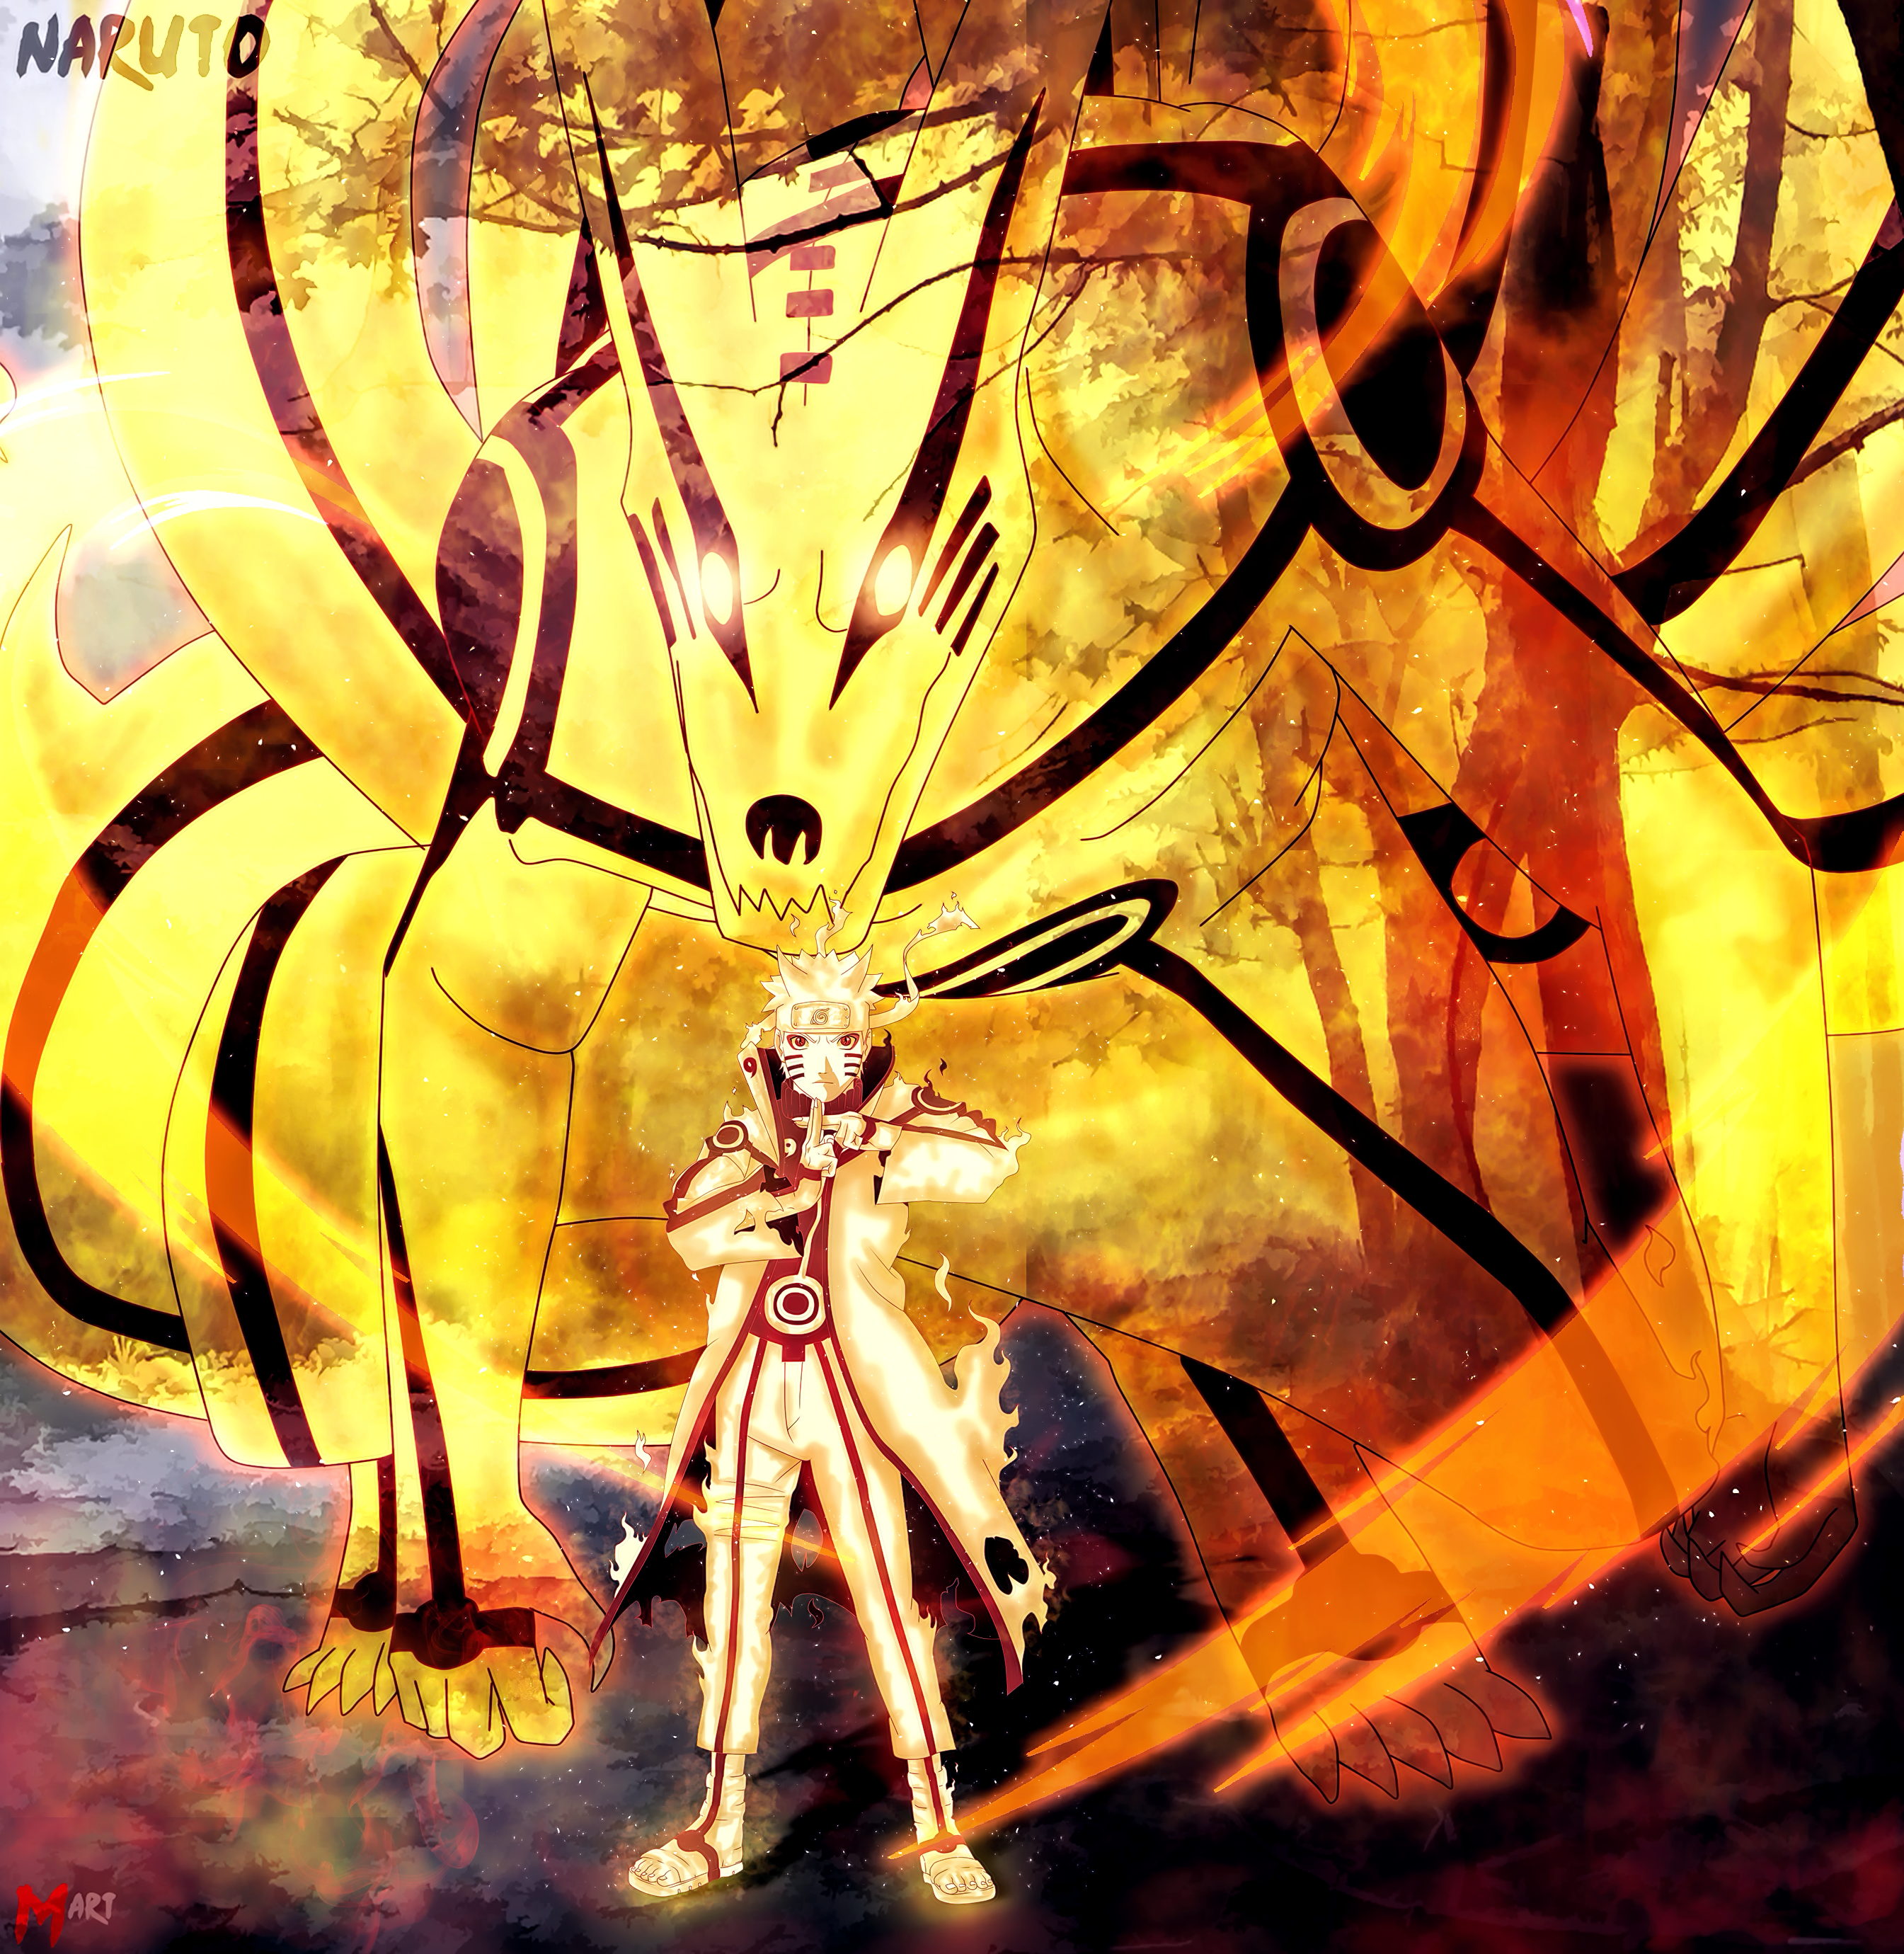 Naruto Kurama Mode Wallpapers Group 67: Naruto Sage Bijuu Mode And Kurama By MArttist On DeviantArt